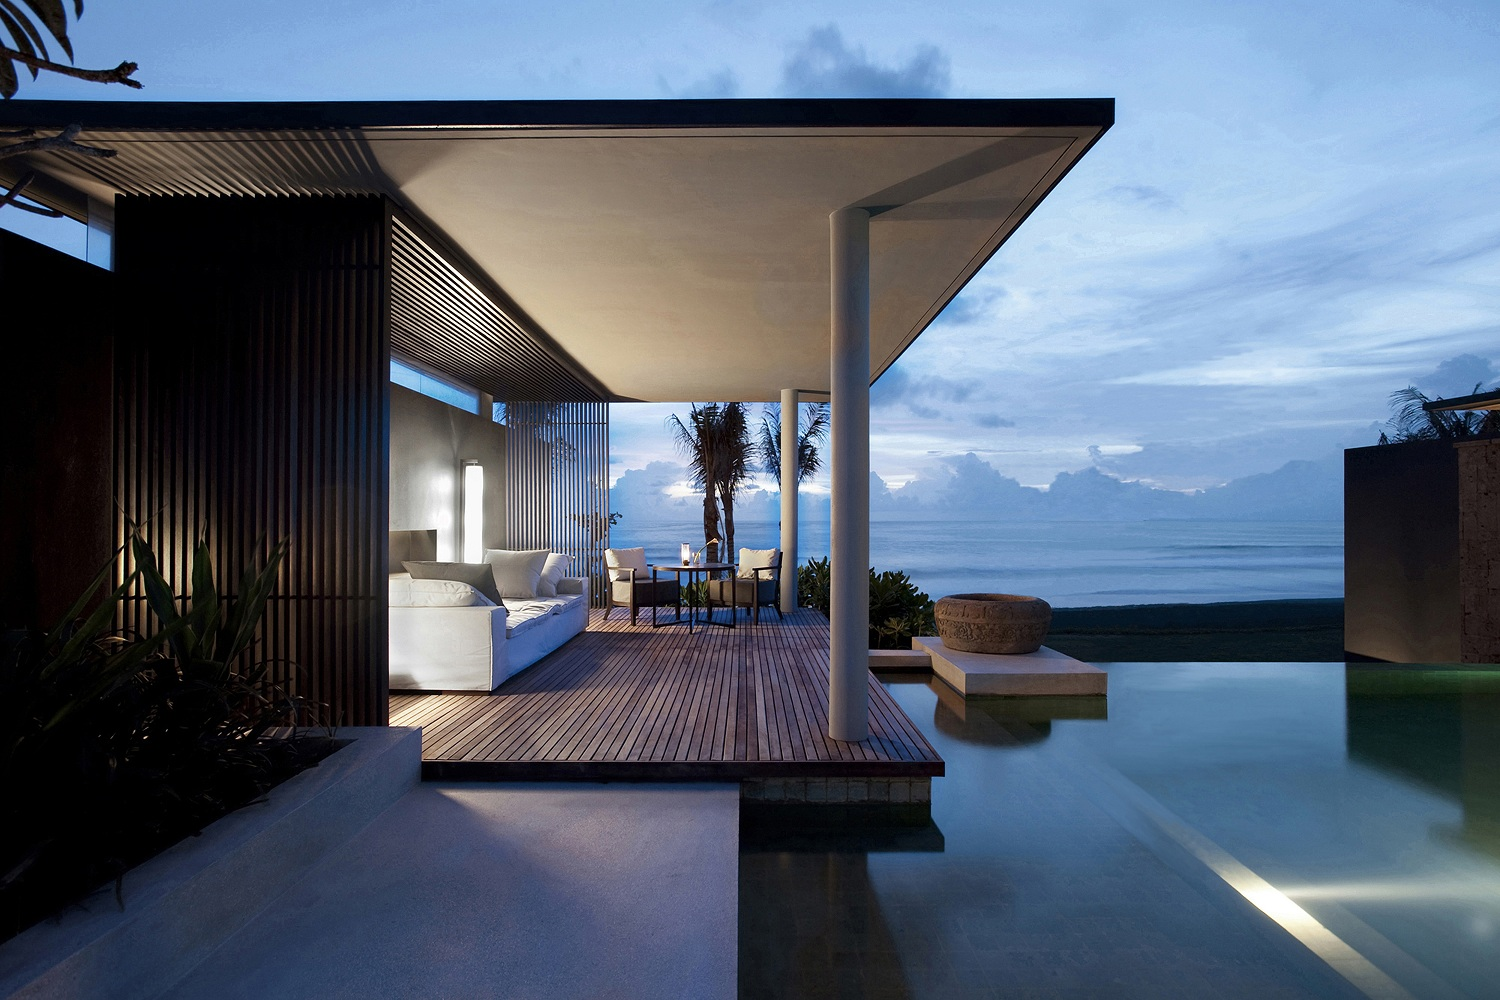 Alila-Villas-Soori-Bali-private-pool-terrace-of-an-Ocean-Villa